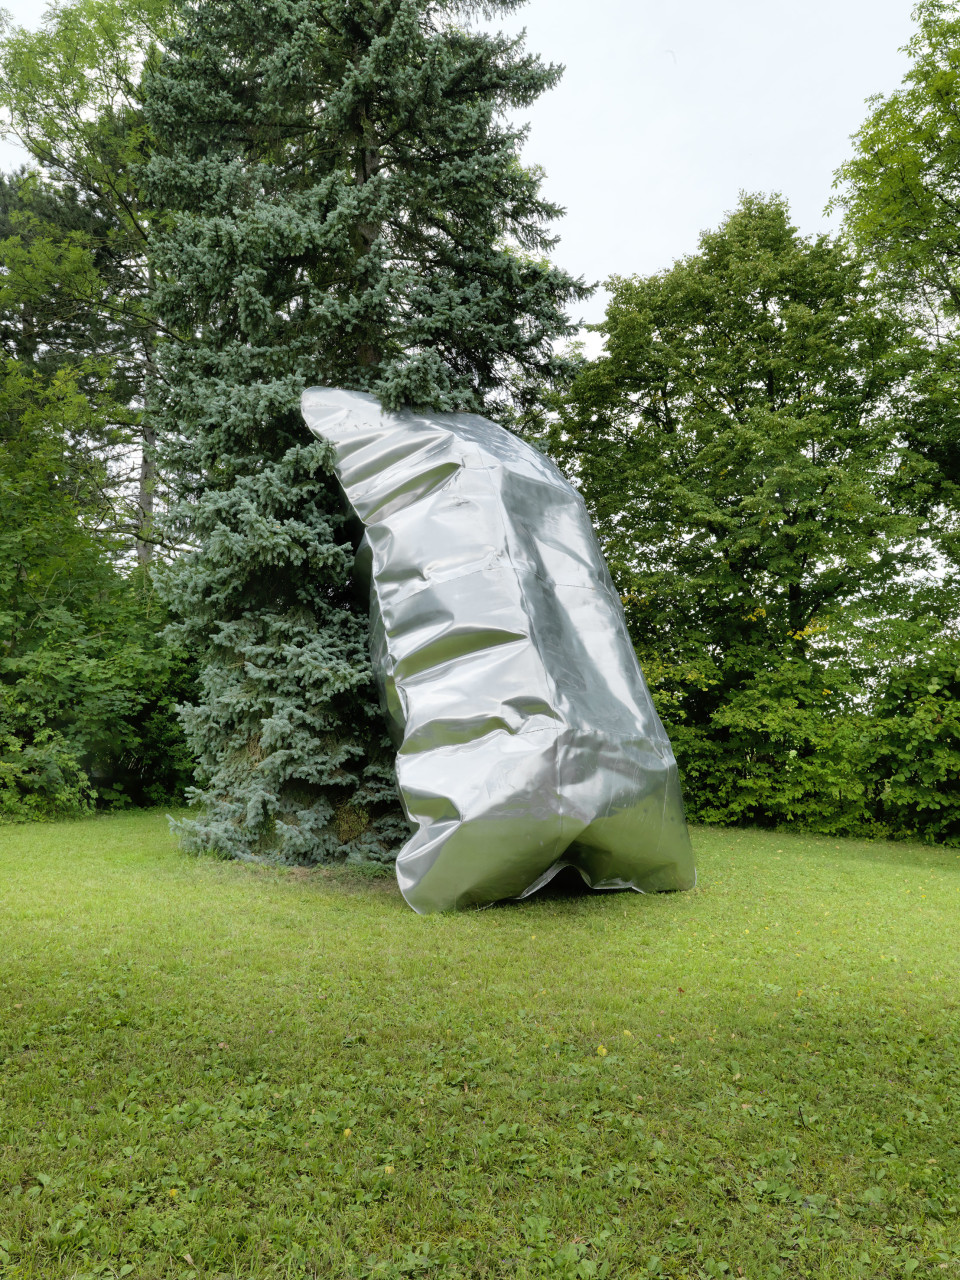 Hans Kupelwieser Gonflables, 2019 Aluminium inflated 550 x 300 x 240 cm 216 1/2 x 118 1/8 x 94 1/2 in